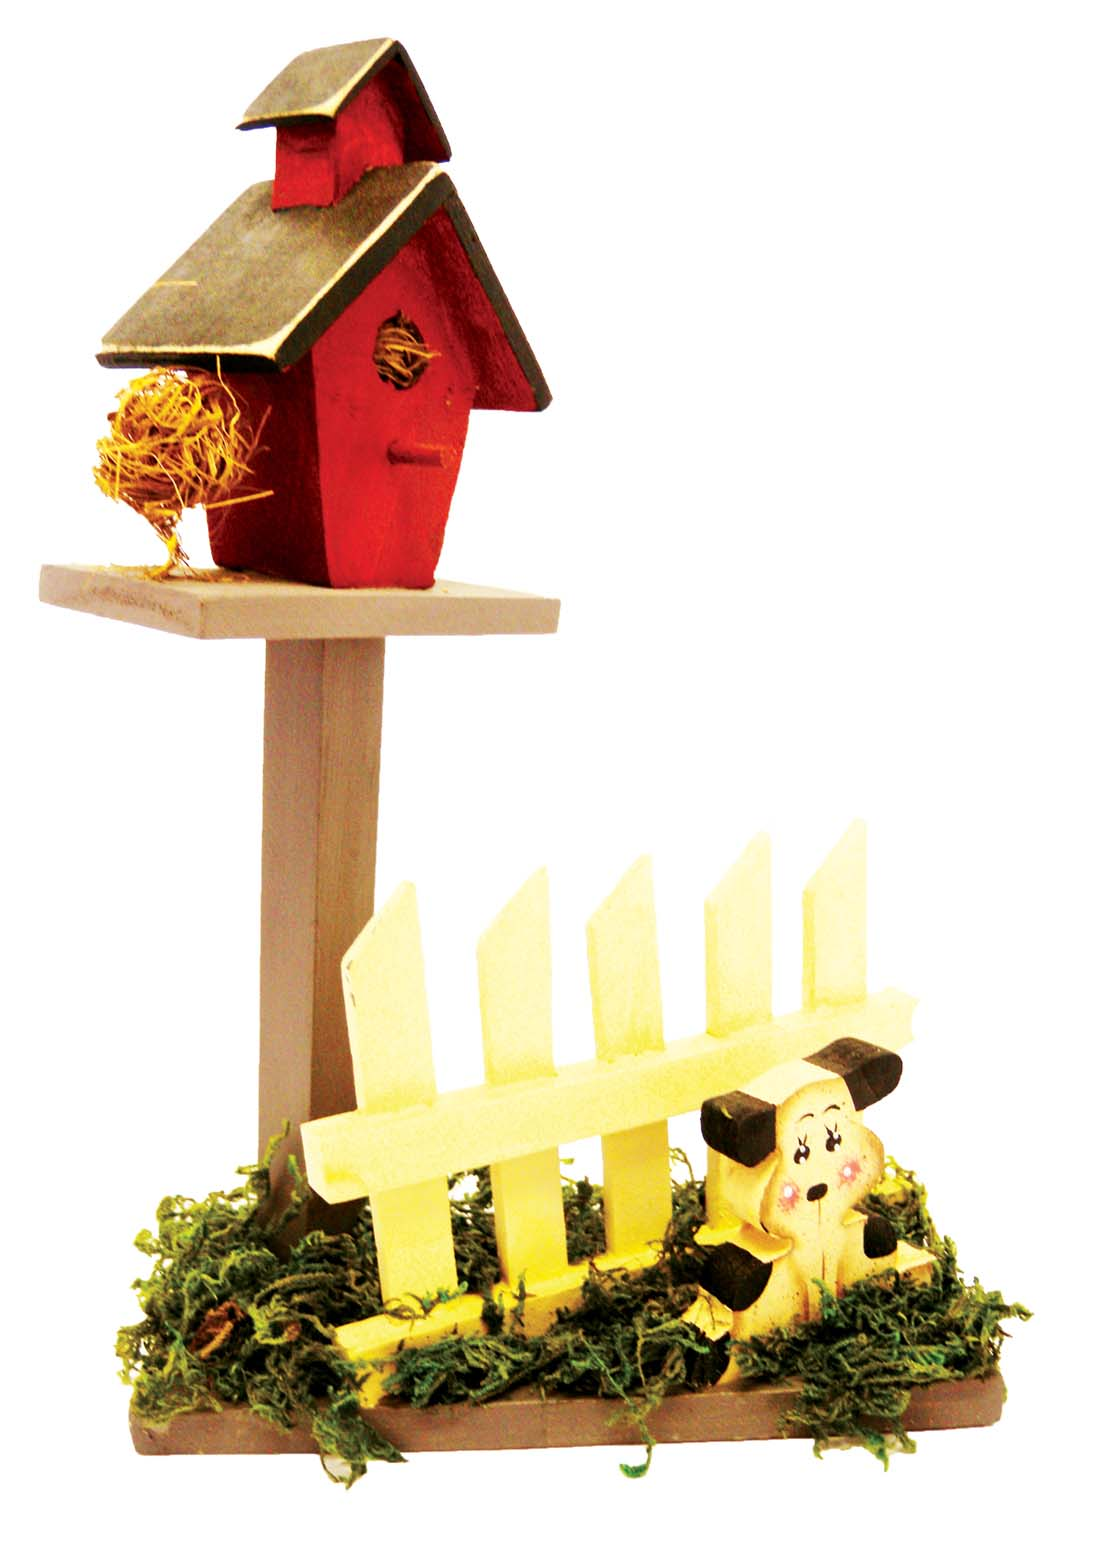 View DECORATIVE WOODEN BIRD HOUSE ON PICKET FENCE & GRASS DECO HAND PAINTED ASST. ANIMALS 10 INCHES TALL